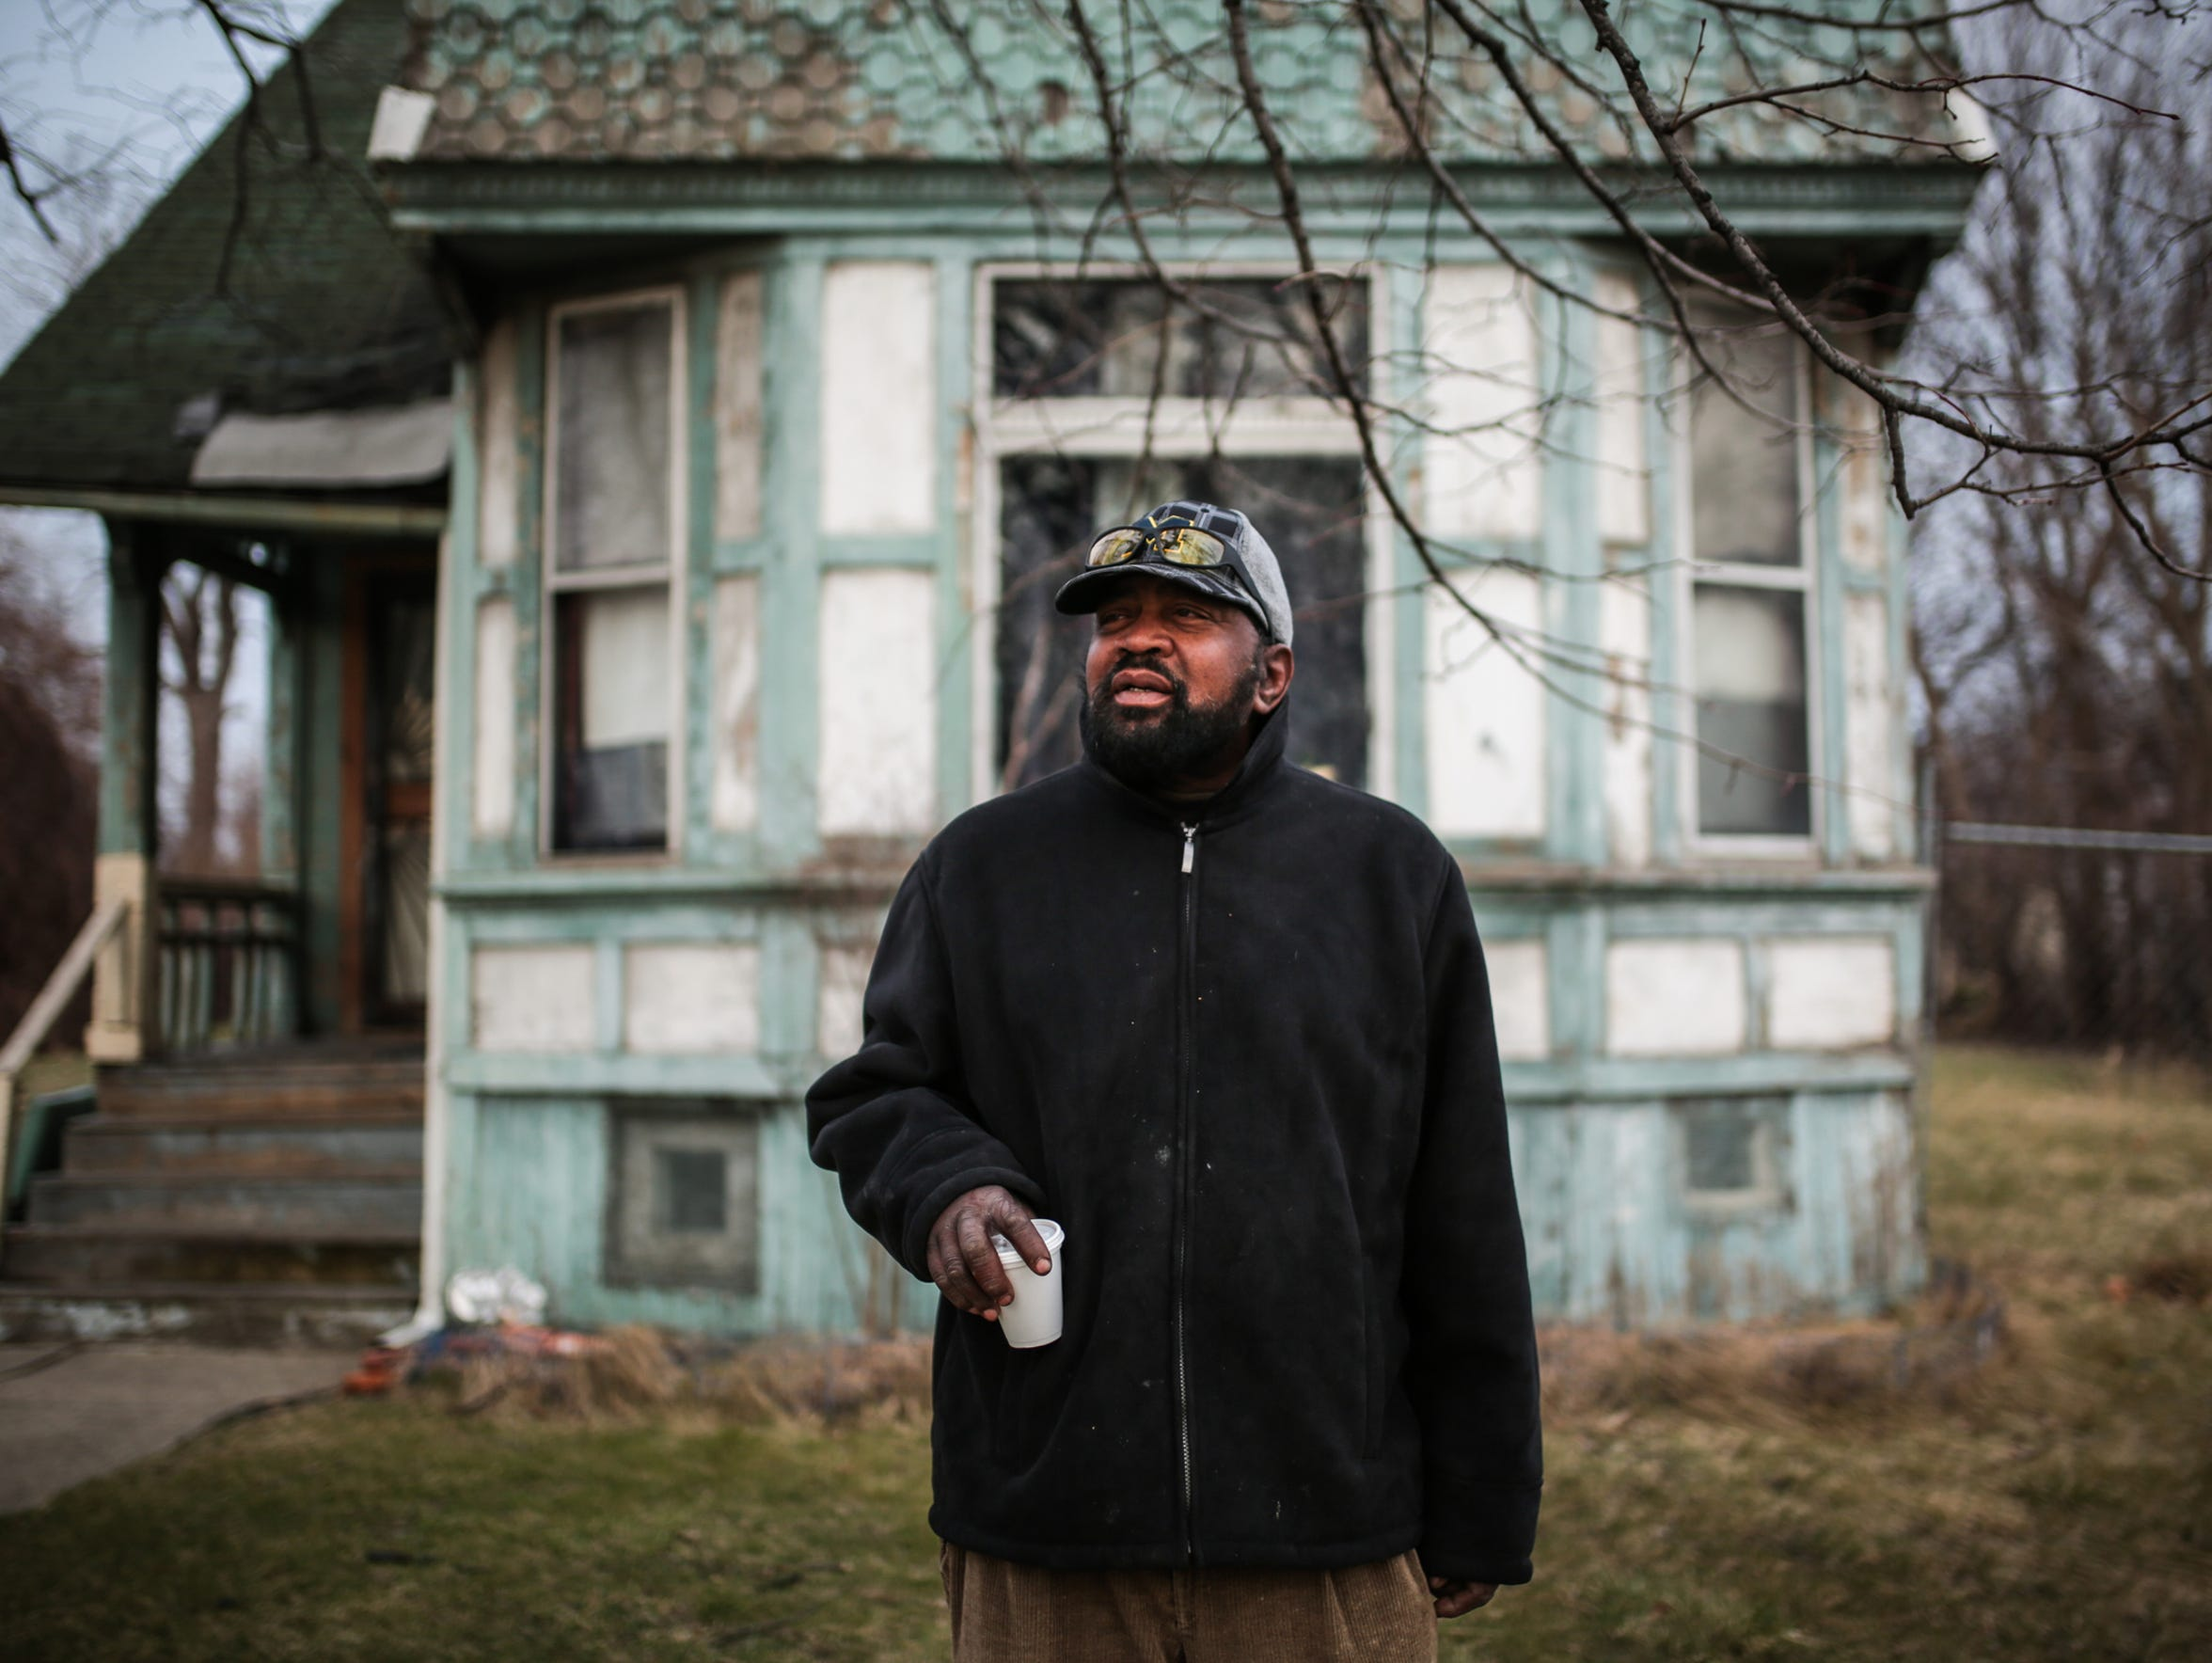 Darnell Taylor, 63, of Detroit stands near the Salvation